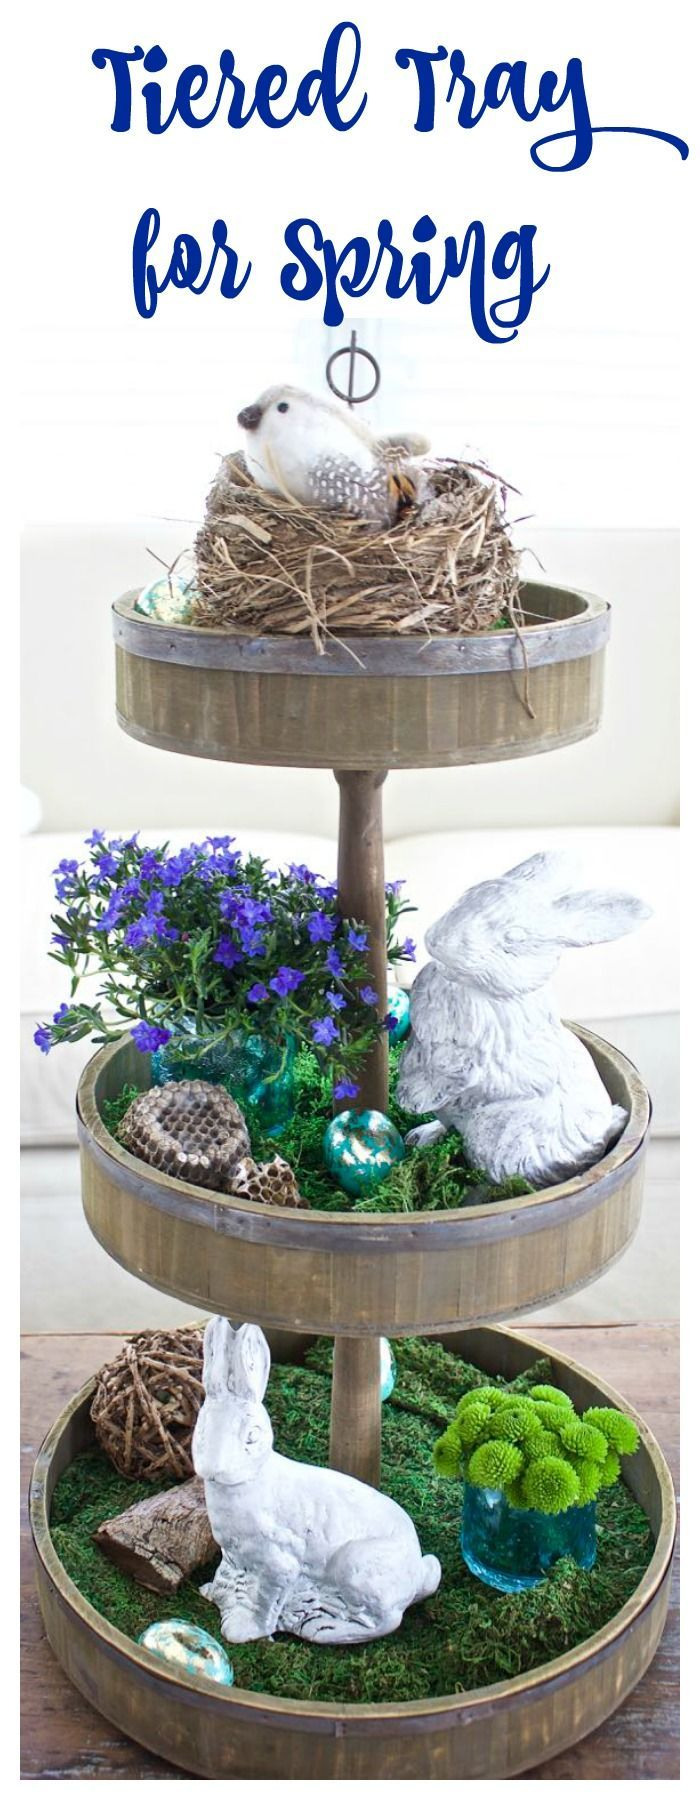 Tiered Tray Decor for Spring and Easter. Farmhouse tiered tray. Nature inspired tiered tray. Chalk paint bunny.  easter tiered tray. Spring tiered tray. Gold leaf eggs.